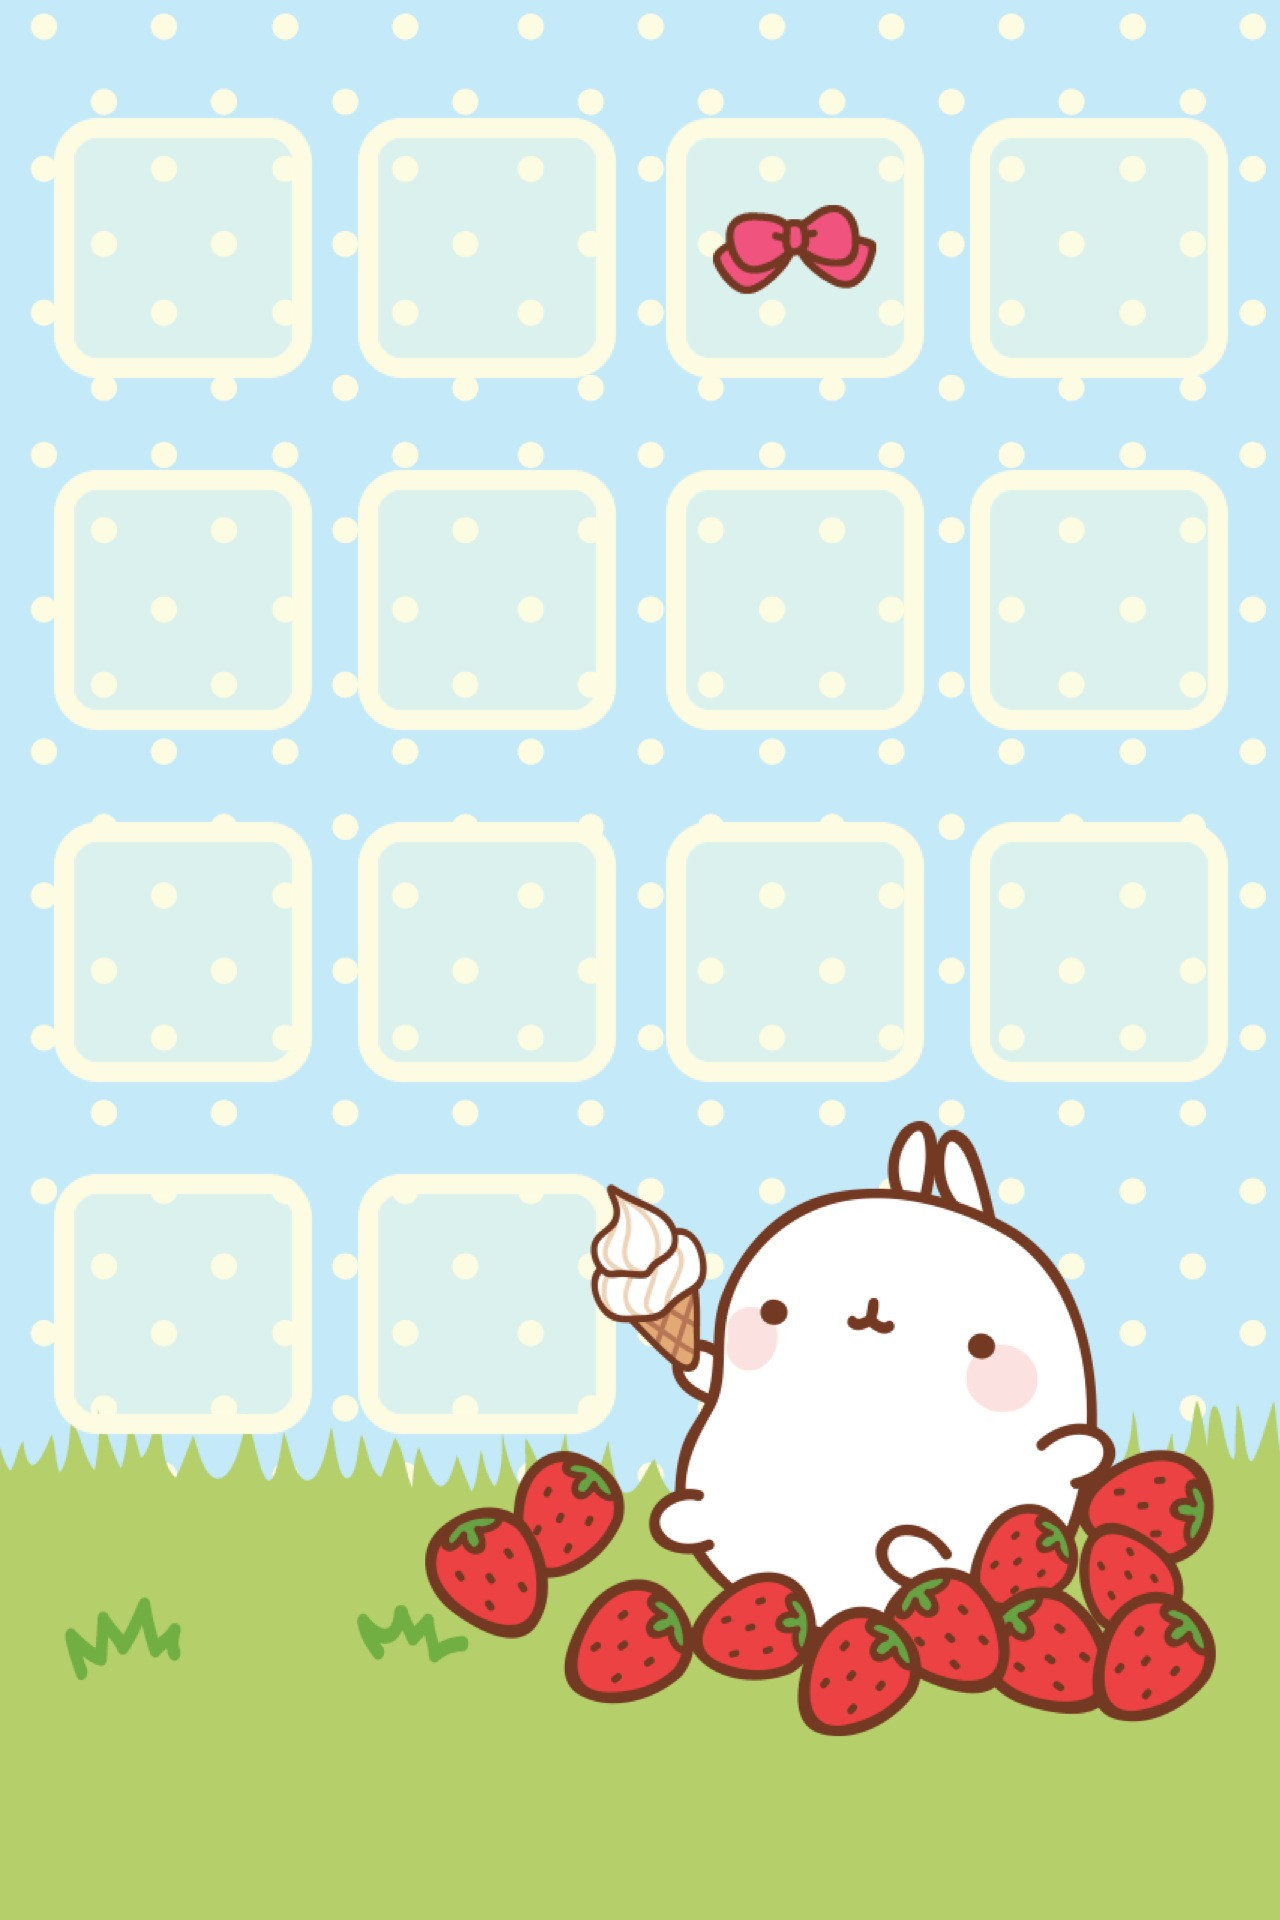 Cute Anime Wallpaper Organizer Cute Laptop Backgrounds 60 Images